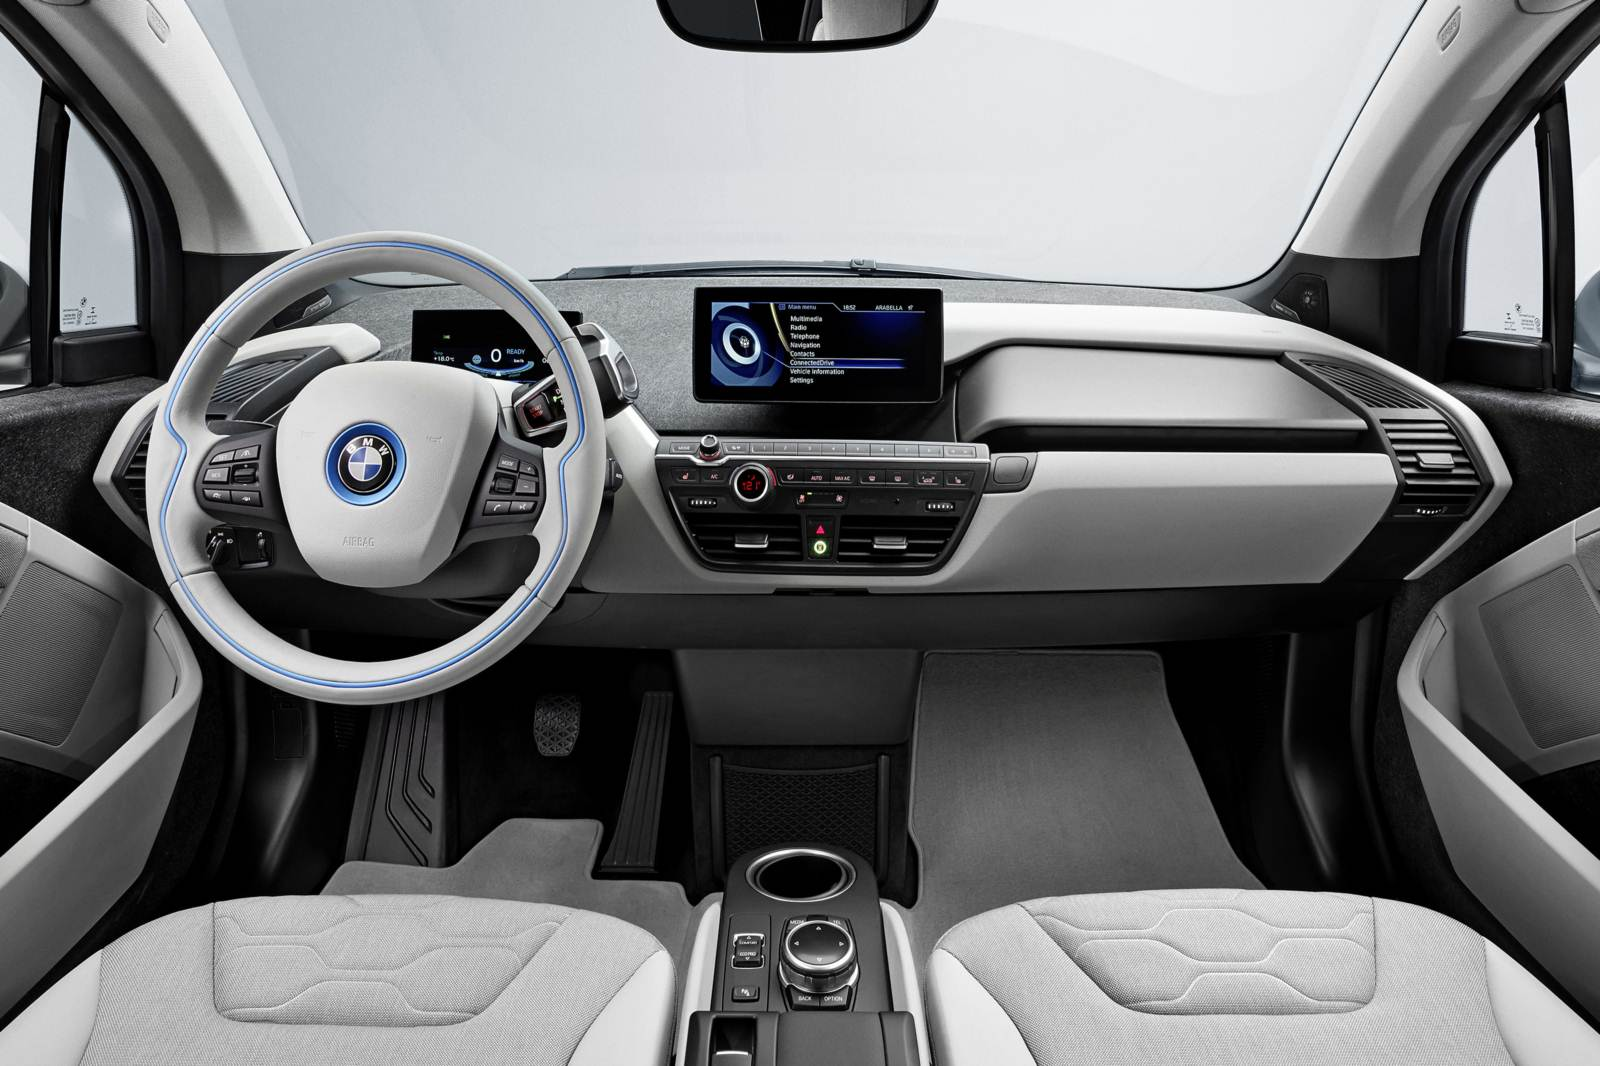 Bmw i3 el trico pre os variam entre r 191 mil e r 200 for Interno 1 jazz council